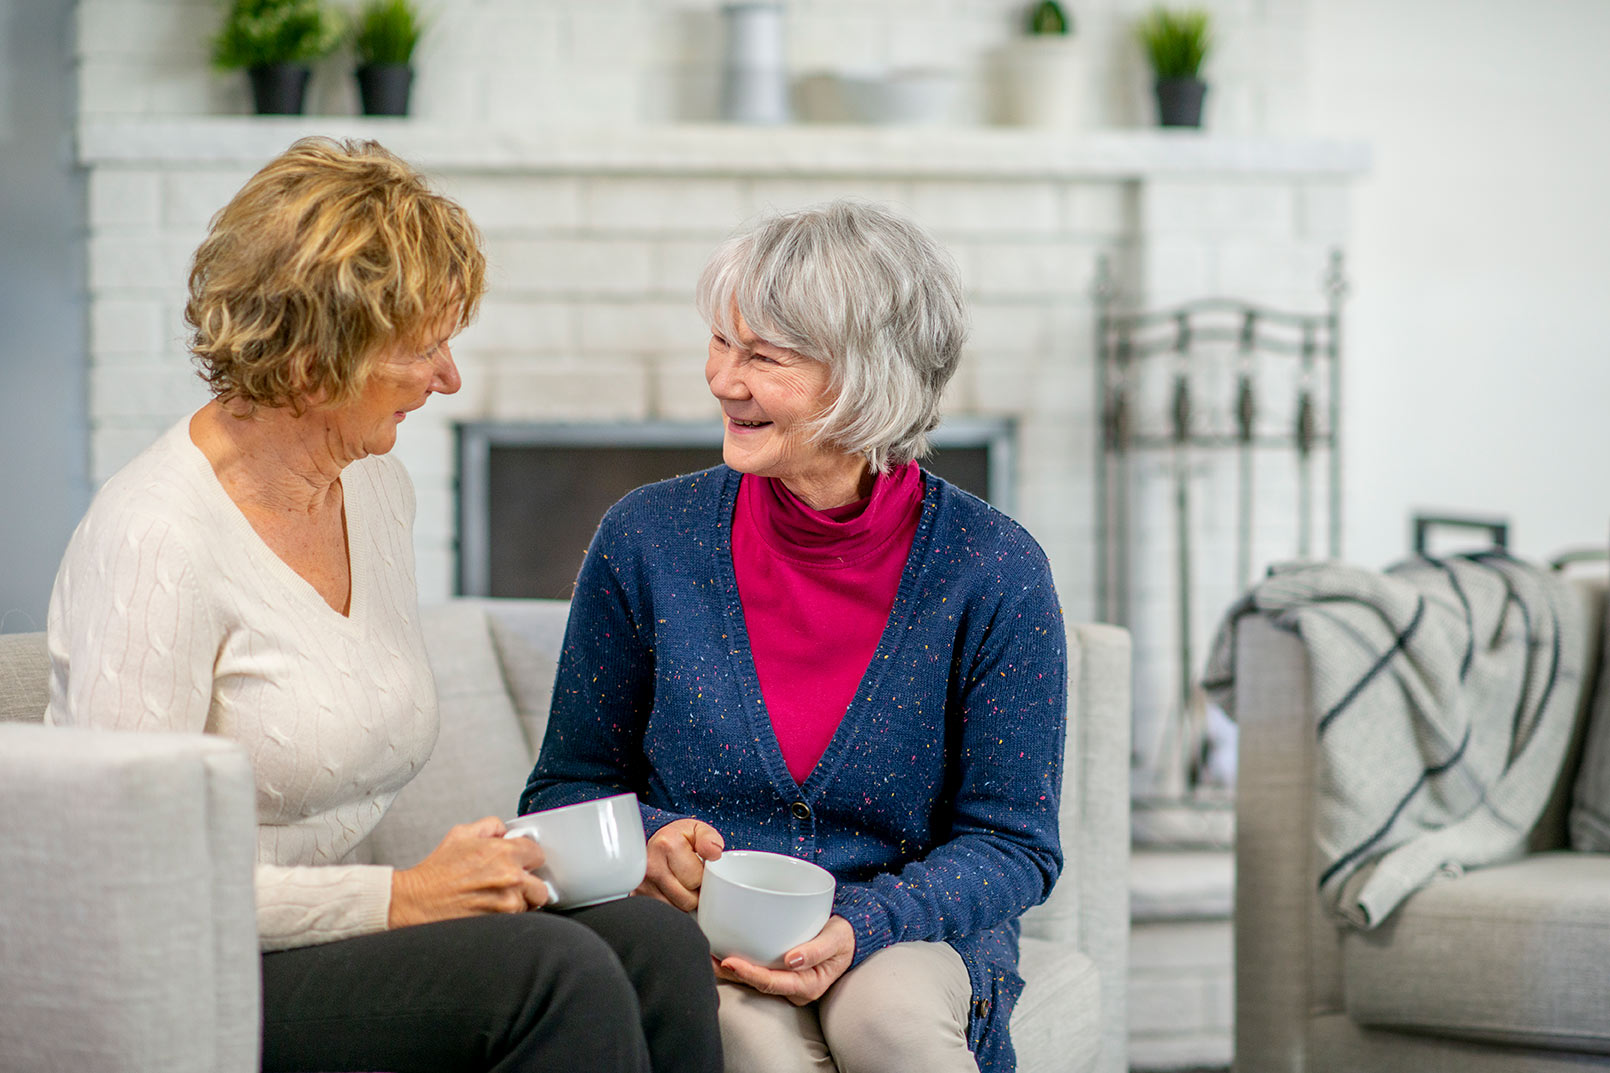 How To Support Senior Caregivers